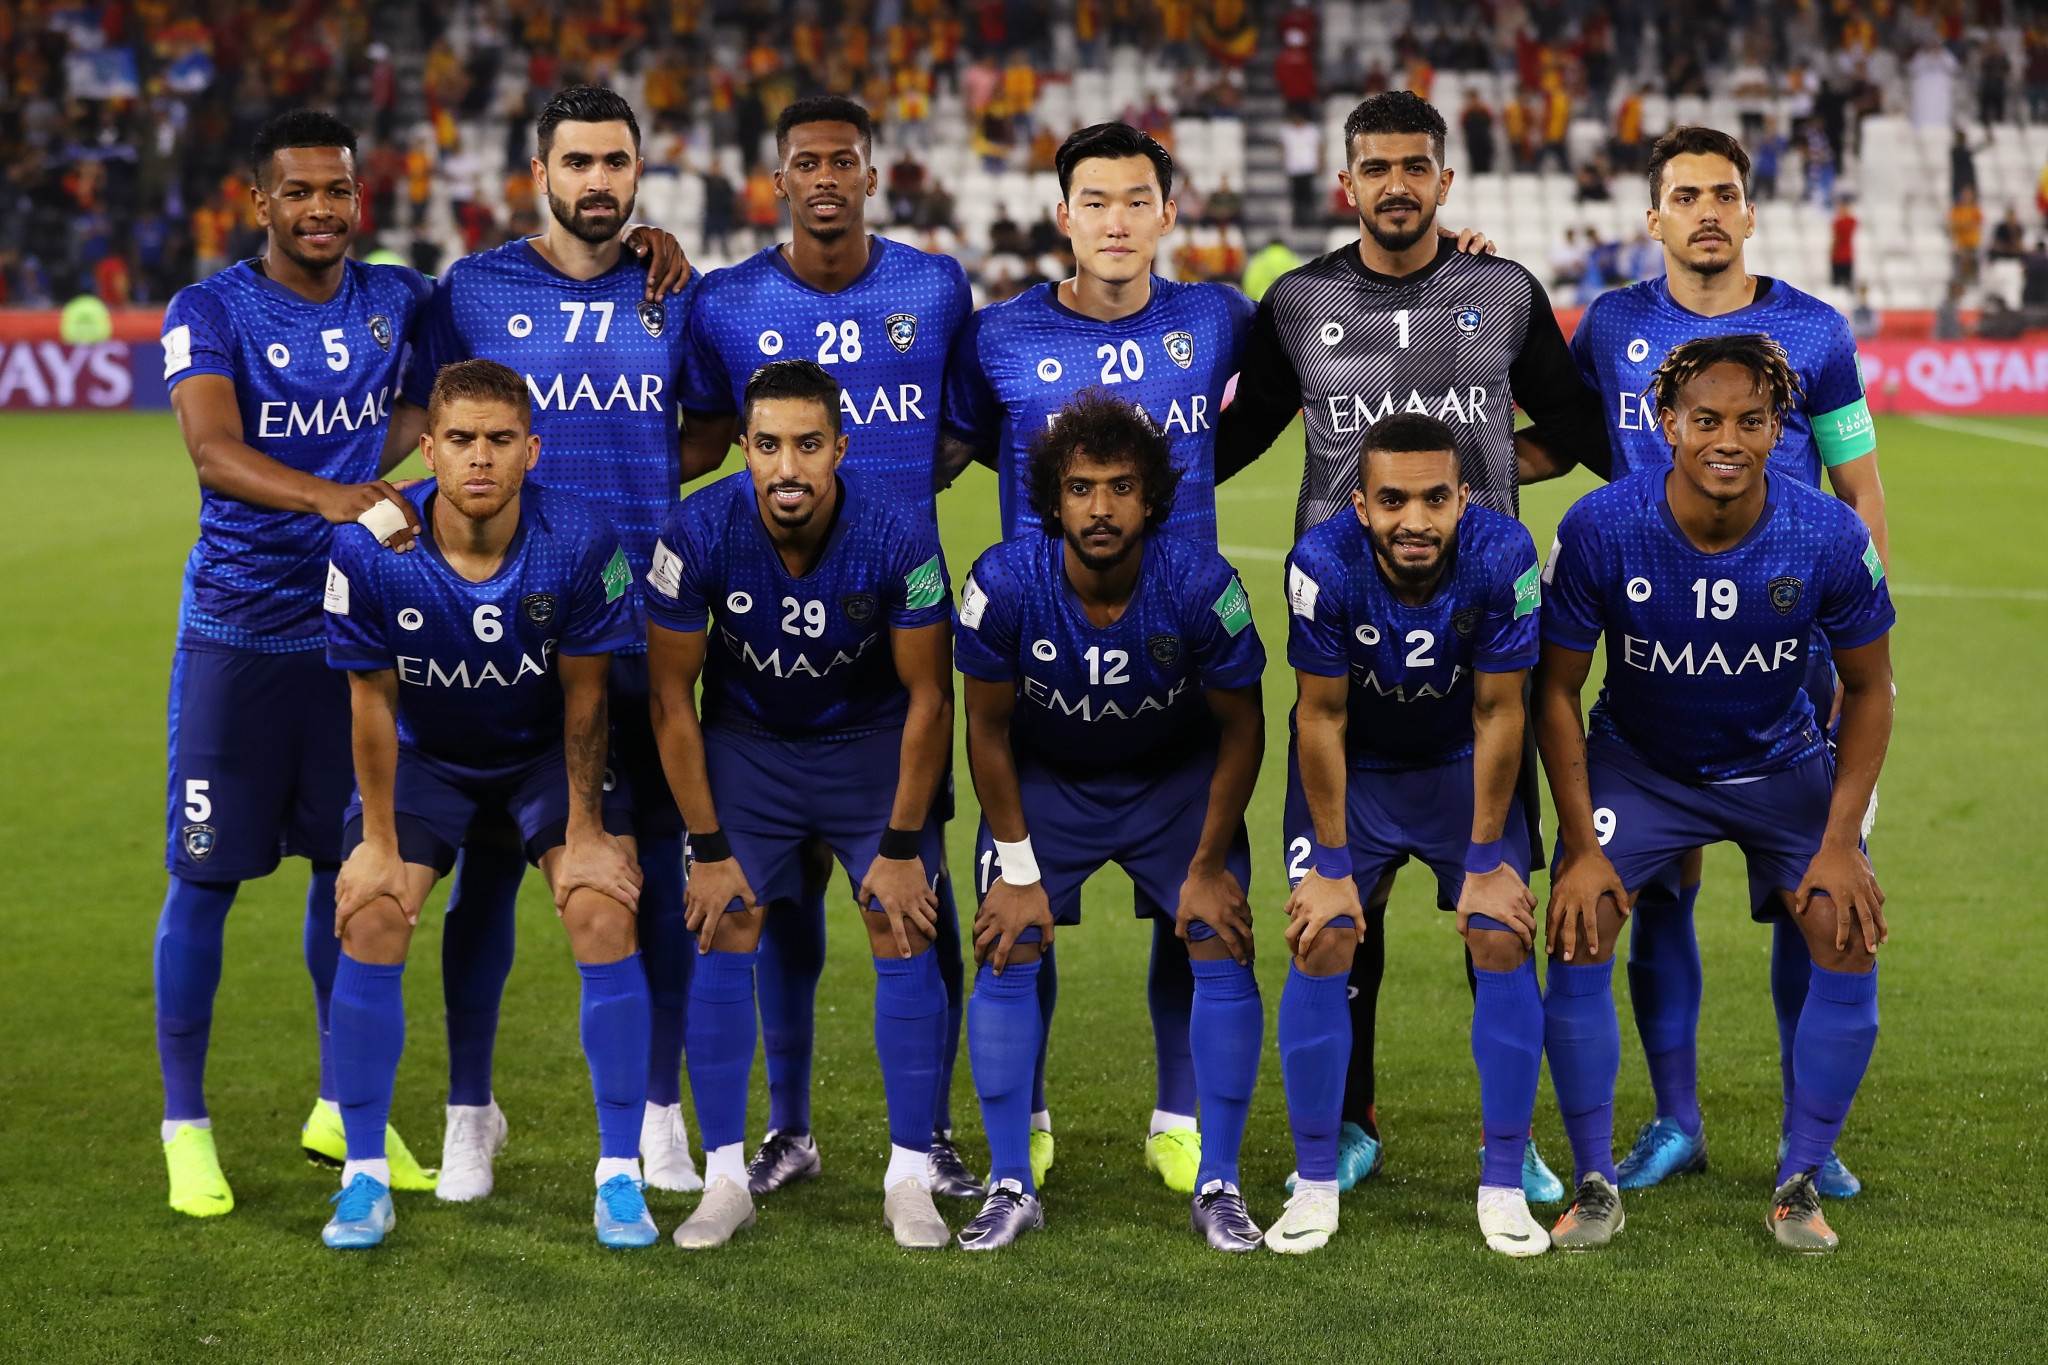 Al Hilal forced to withdraw from AFC Champions League after 15 players test positive for COVID-19